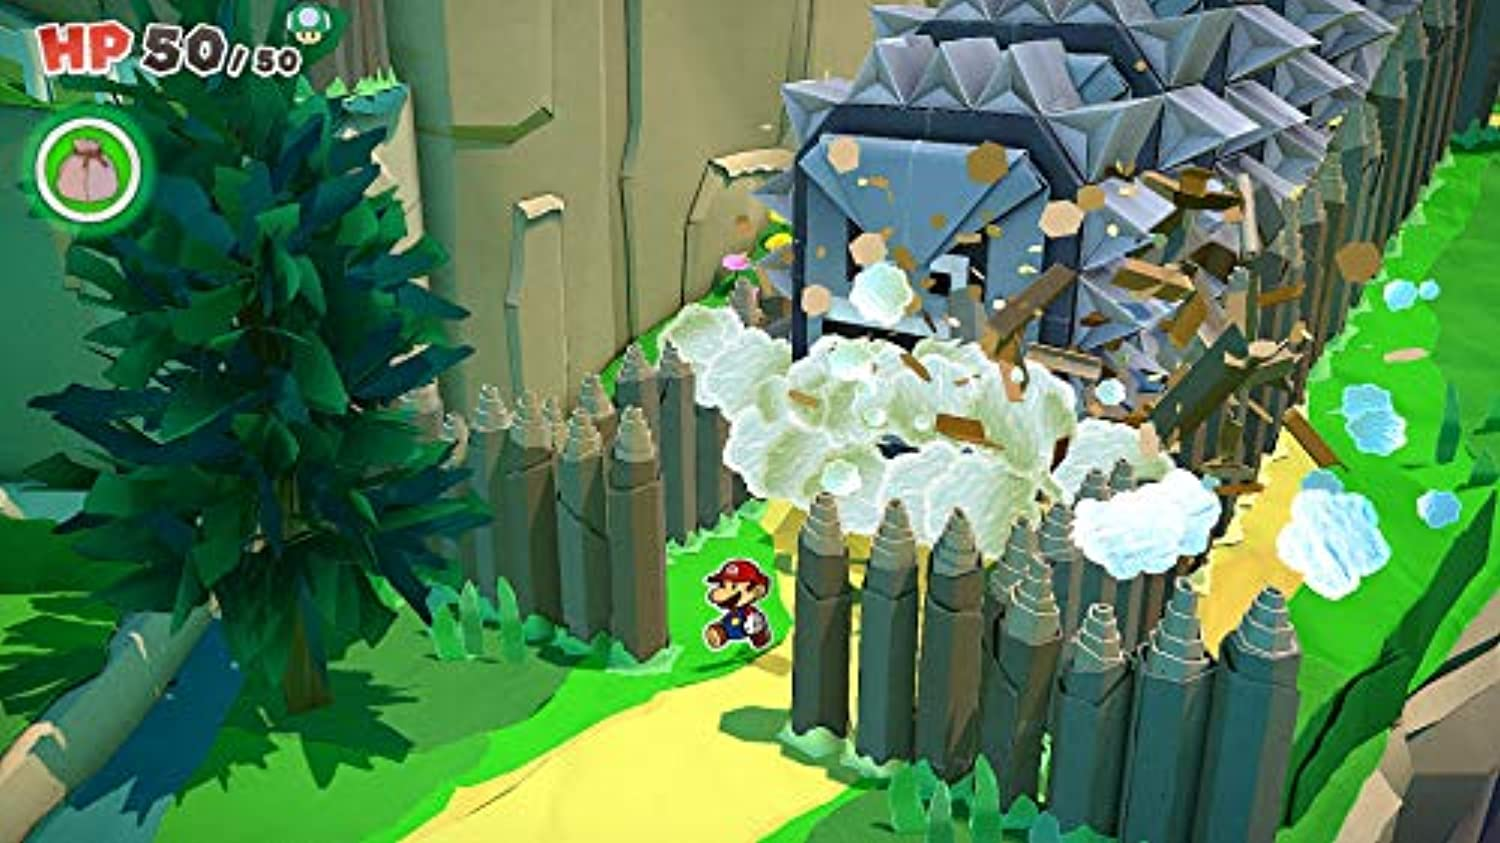 Classier: Buy Nintendo Paper Mario: The Origami King - Nintendo Switch